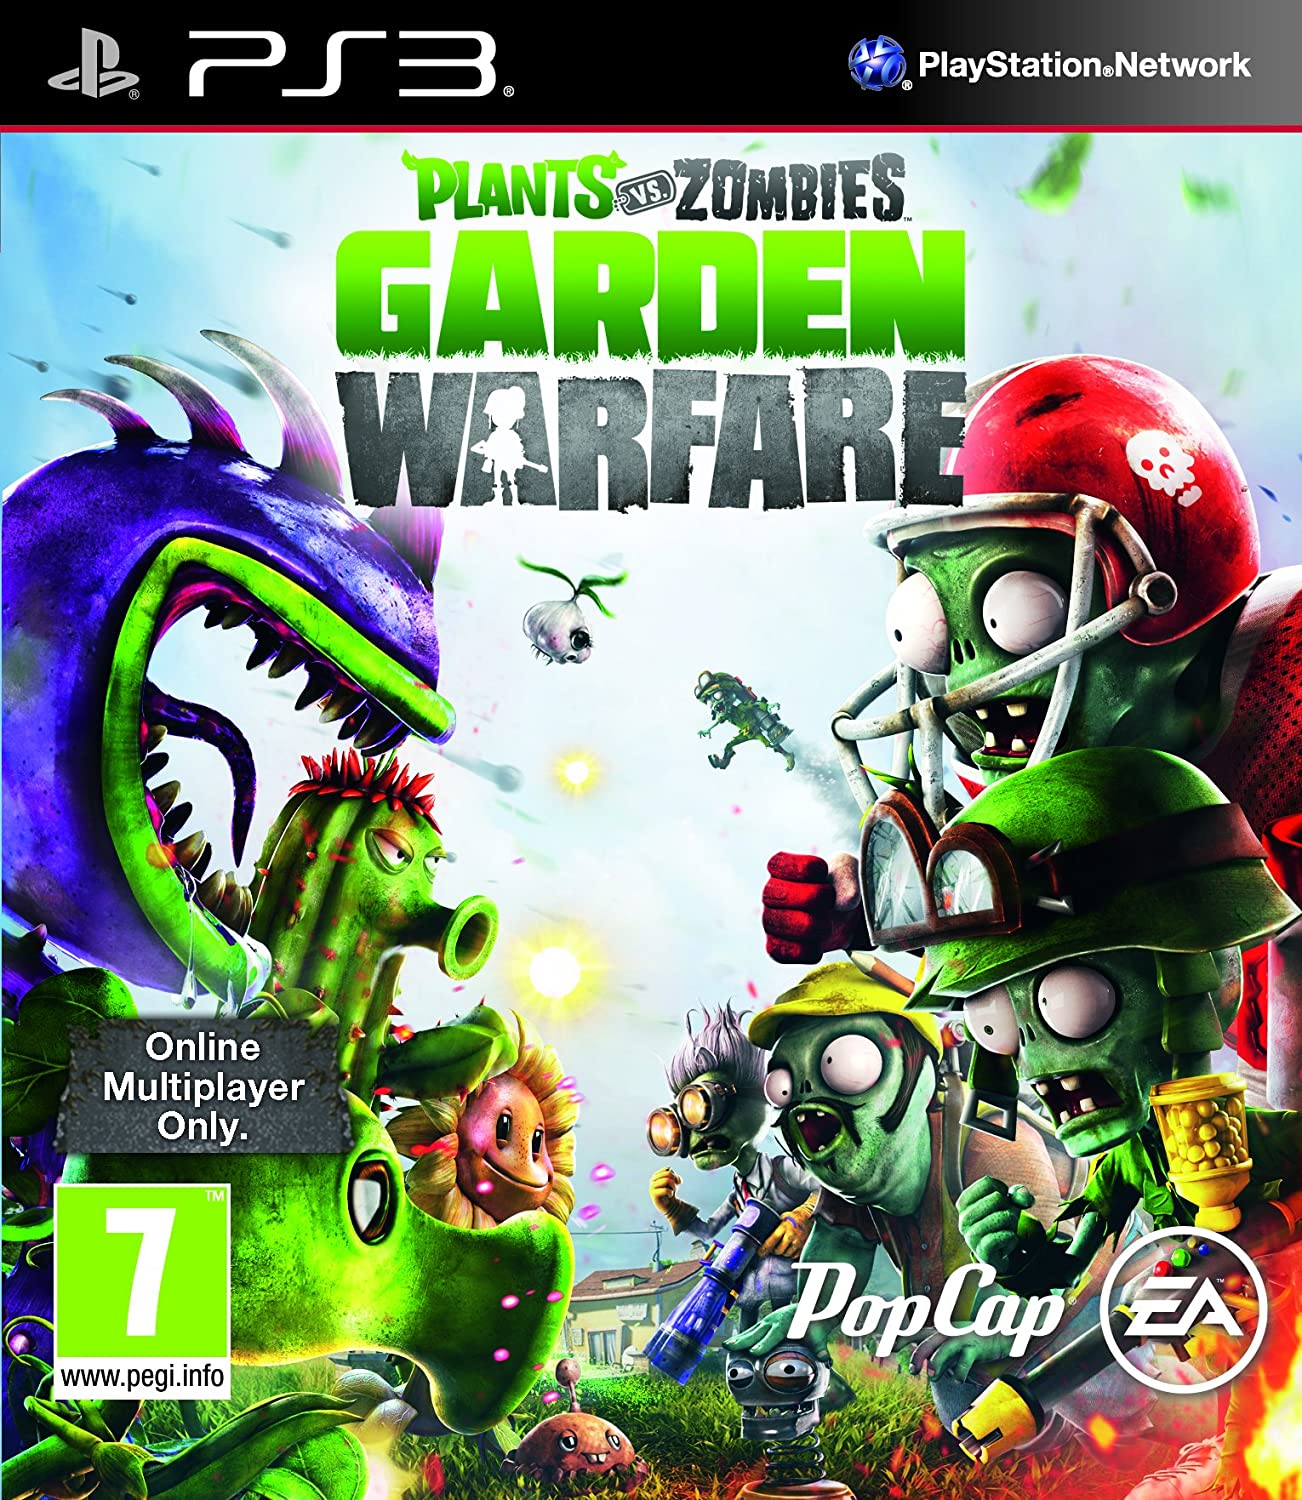 Plants Vs Zombies Garden Warfare (PS3): Plants Vs Zombies